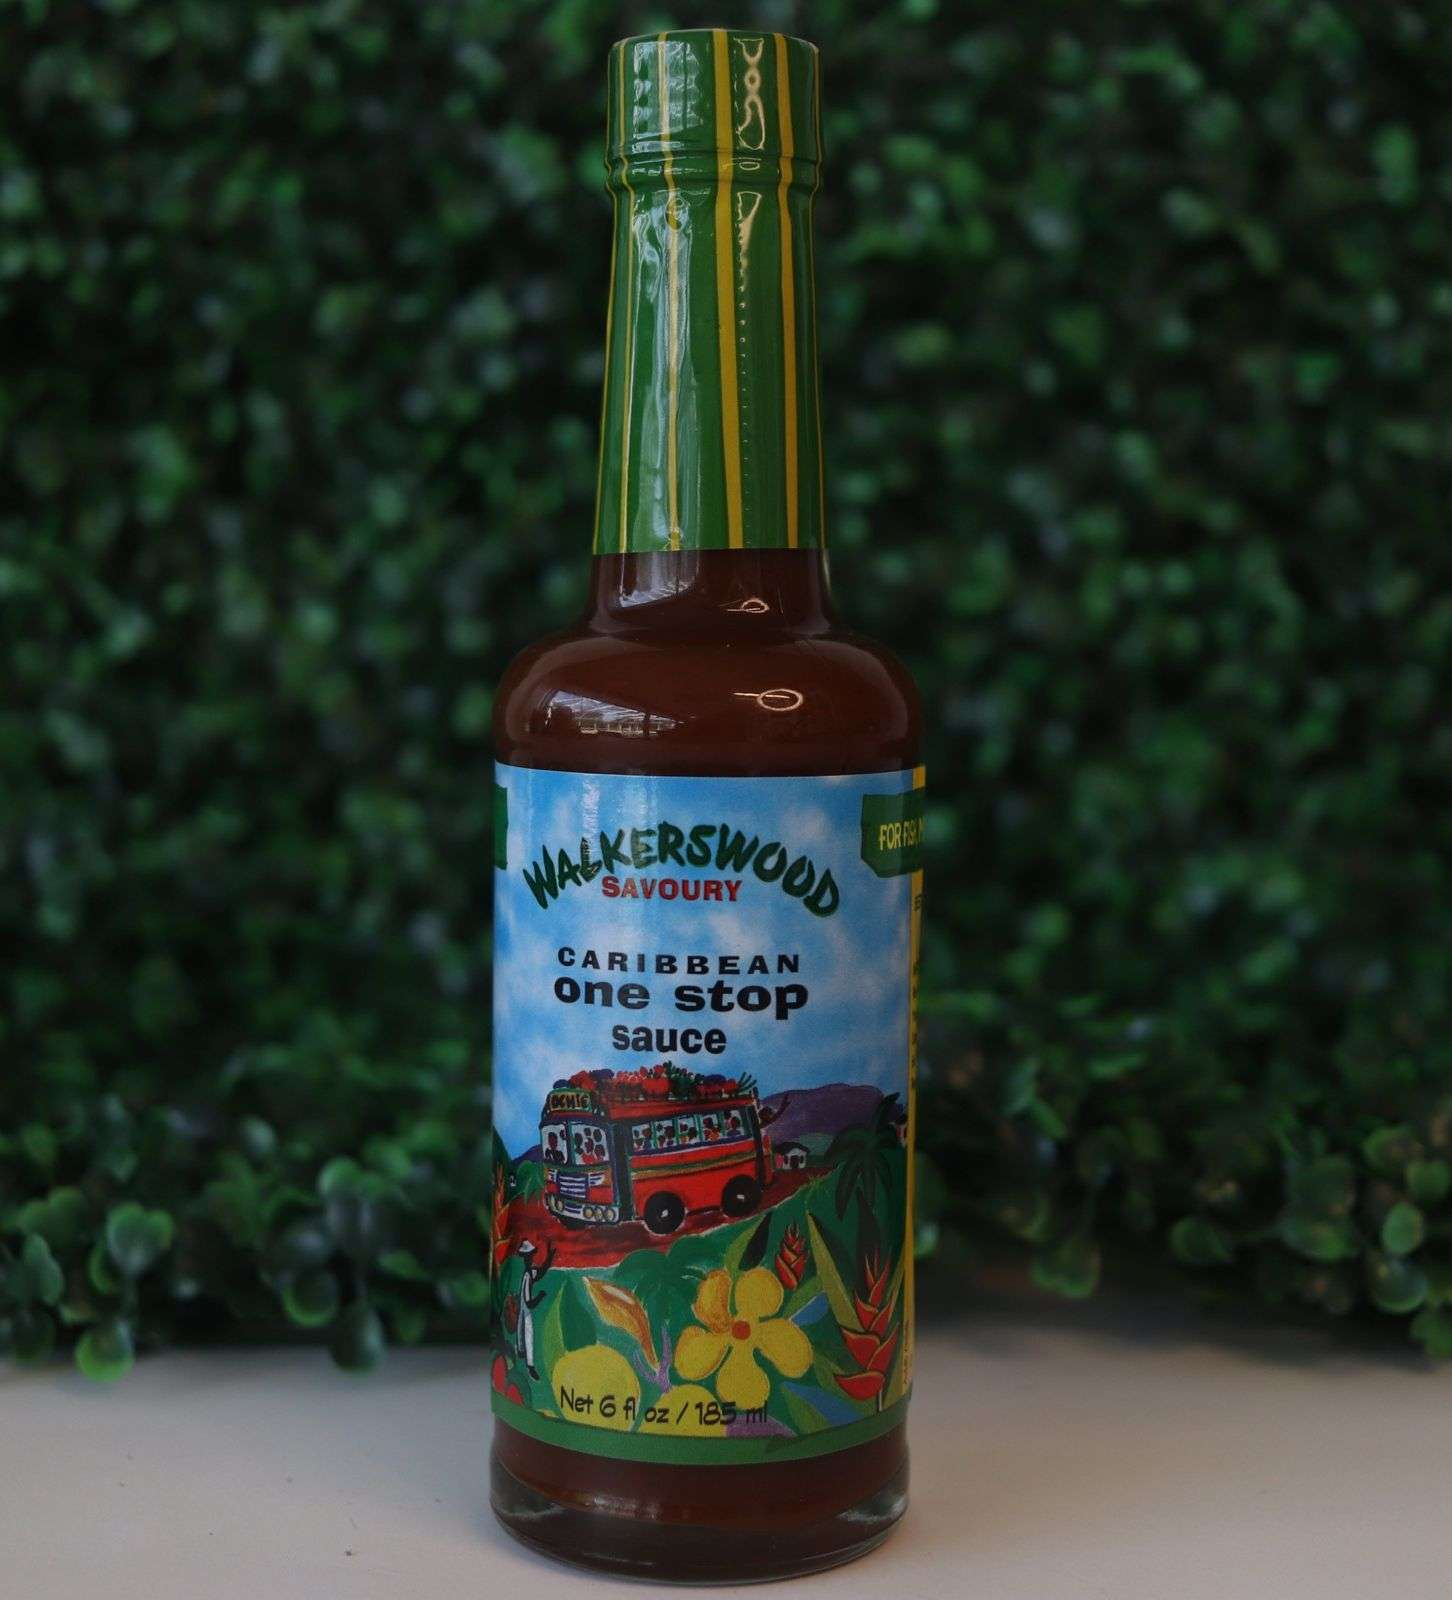 Walkerswood Savoury Caribbean One Stop Sauce